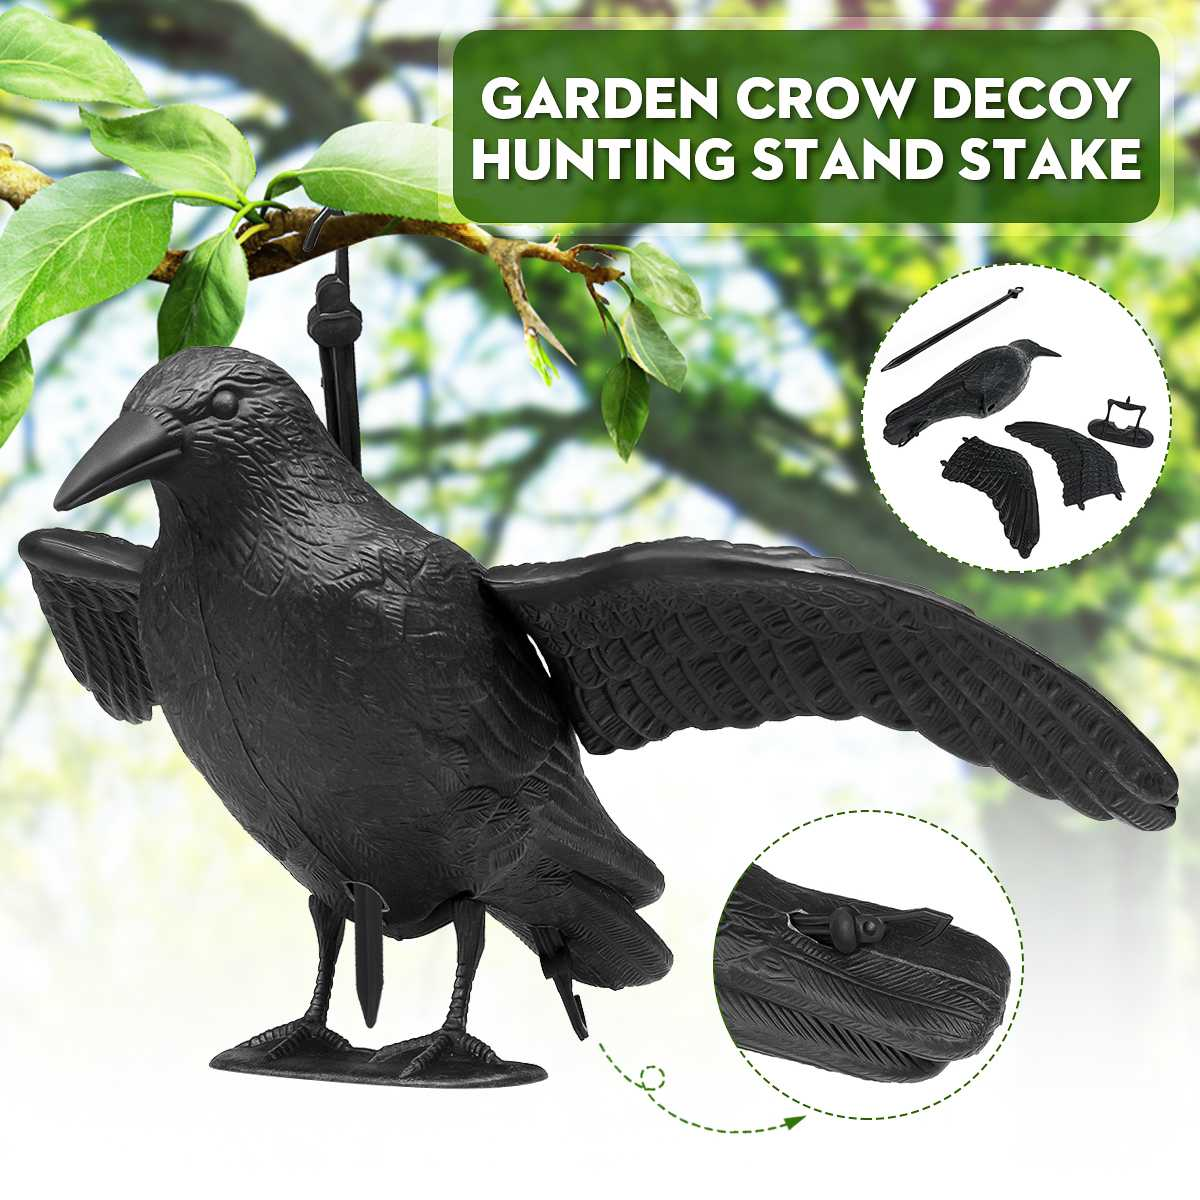 Crow Hunting Decoy Scare Scarecrow Realistic Garden Yard Bird Repeller Waterproof Decoration Supplies Gift Scarer Decoration